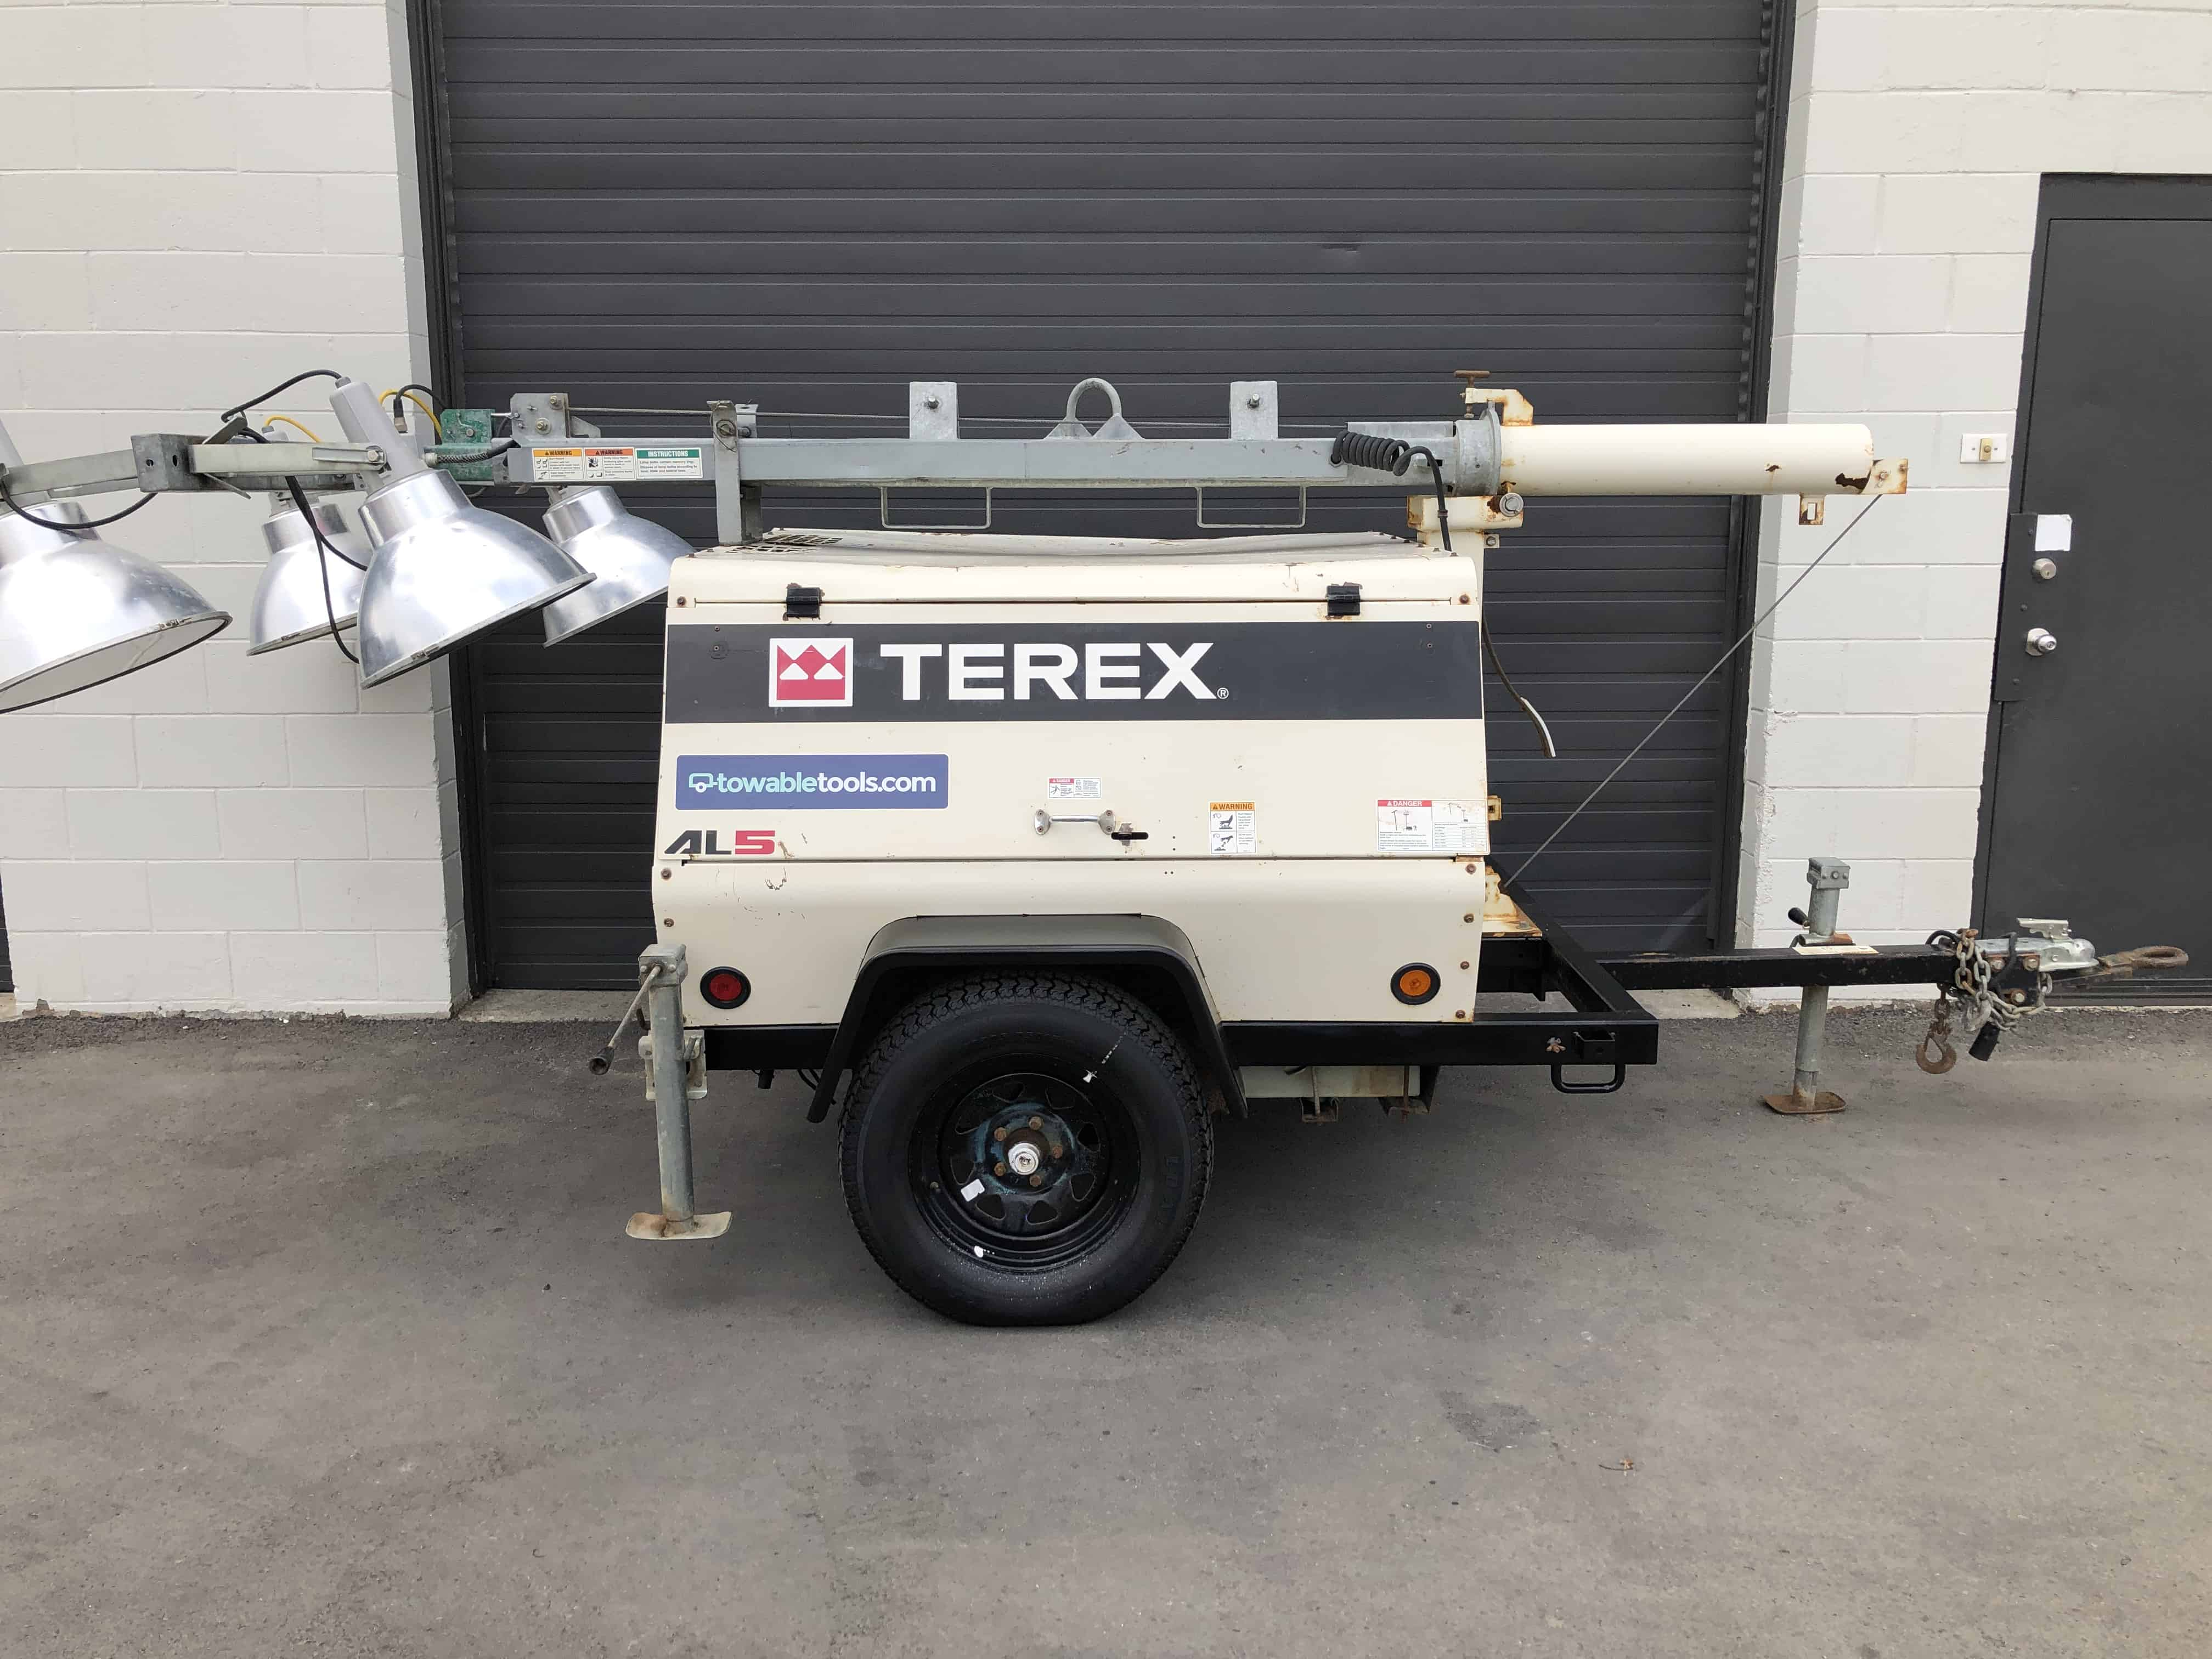 Terex 20kw light tower for sale in Calgary Alberta Canada